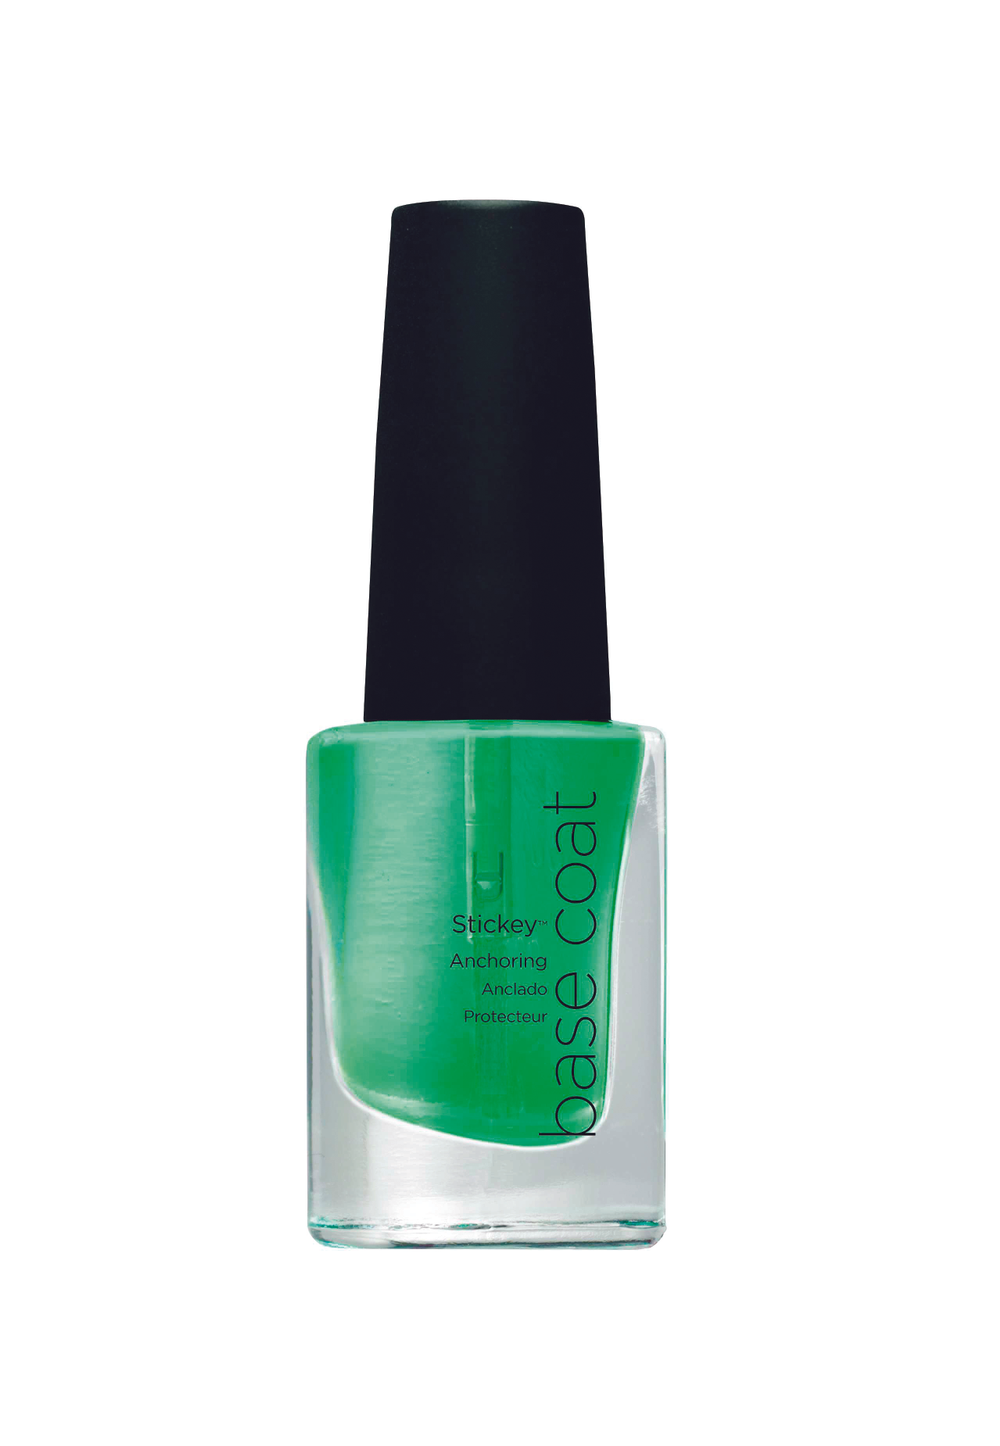 <p>FAVORITE BASE COAT</p> <p>1. <strong>CND:</strong> Stickey Base Coat</p> <p>2. <strong>OPI Products:</strong> Natural Nail Base Coat</p> <p>3. <strong>Seche:</strong> Seche Clear</p> <p>4. <strong>Orly International:</strong> Bonder</p> <p>5. <strong>China Glaze:</strong> Ridge Filler Base Coat</p>